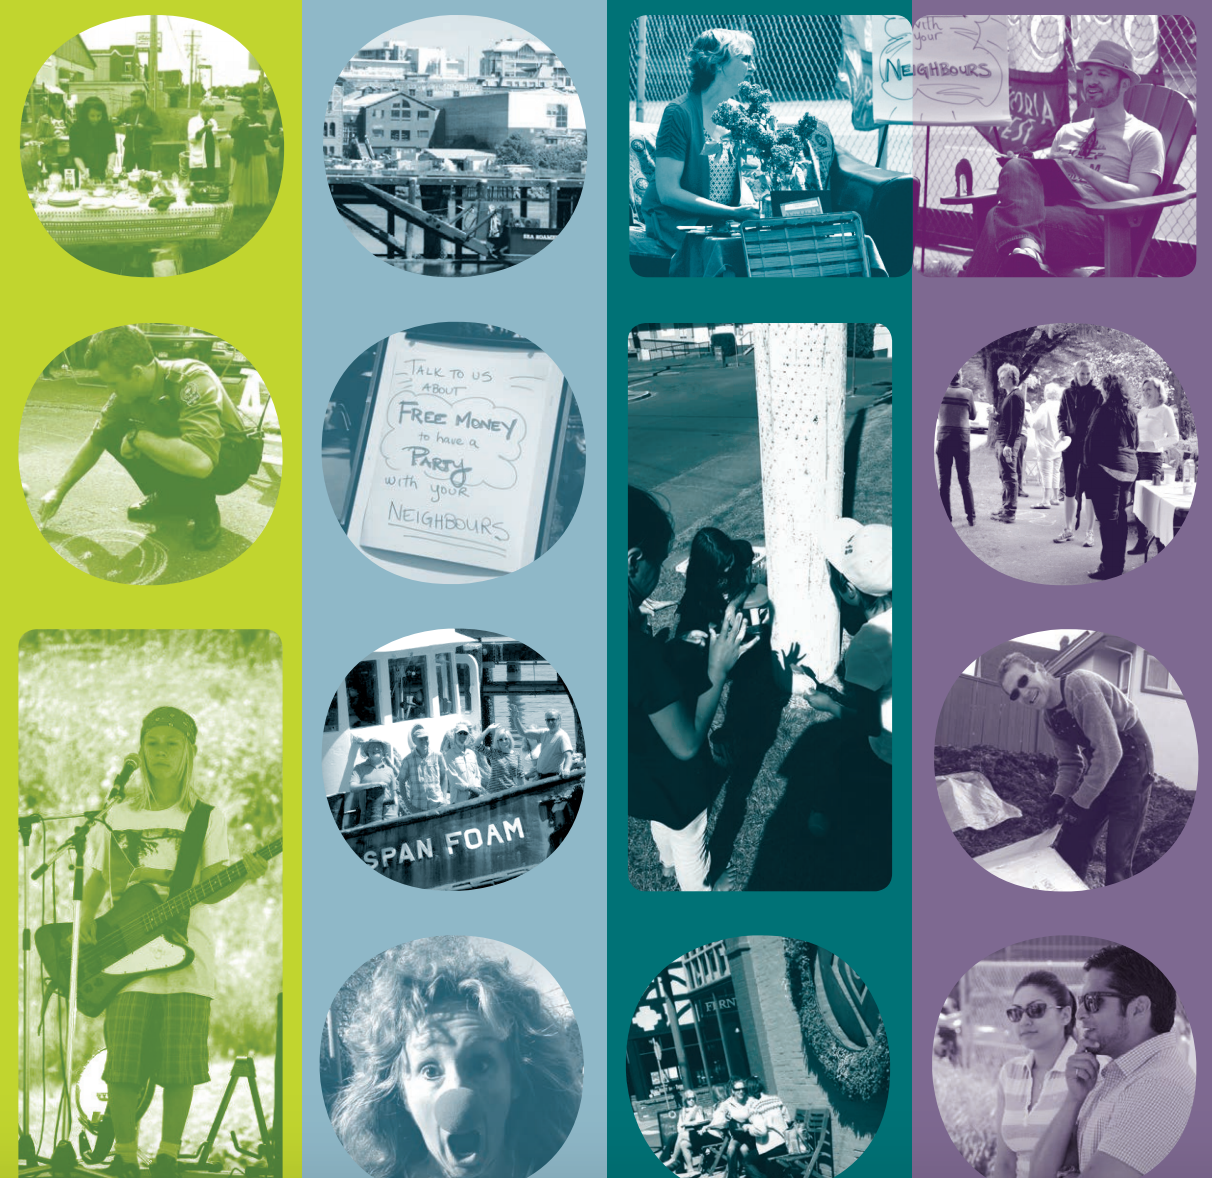 Building Resilient Neighbourhoods: Four Years of Learnings 2012-2016